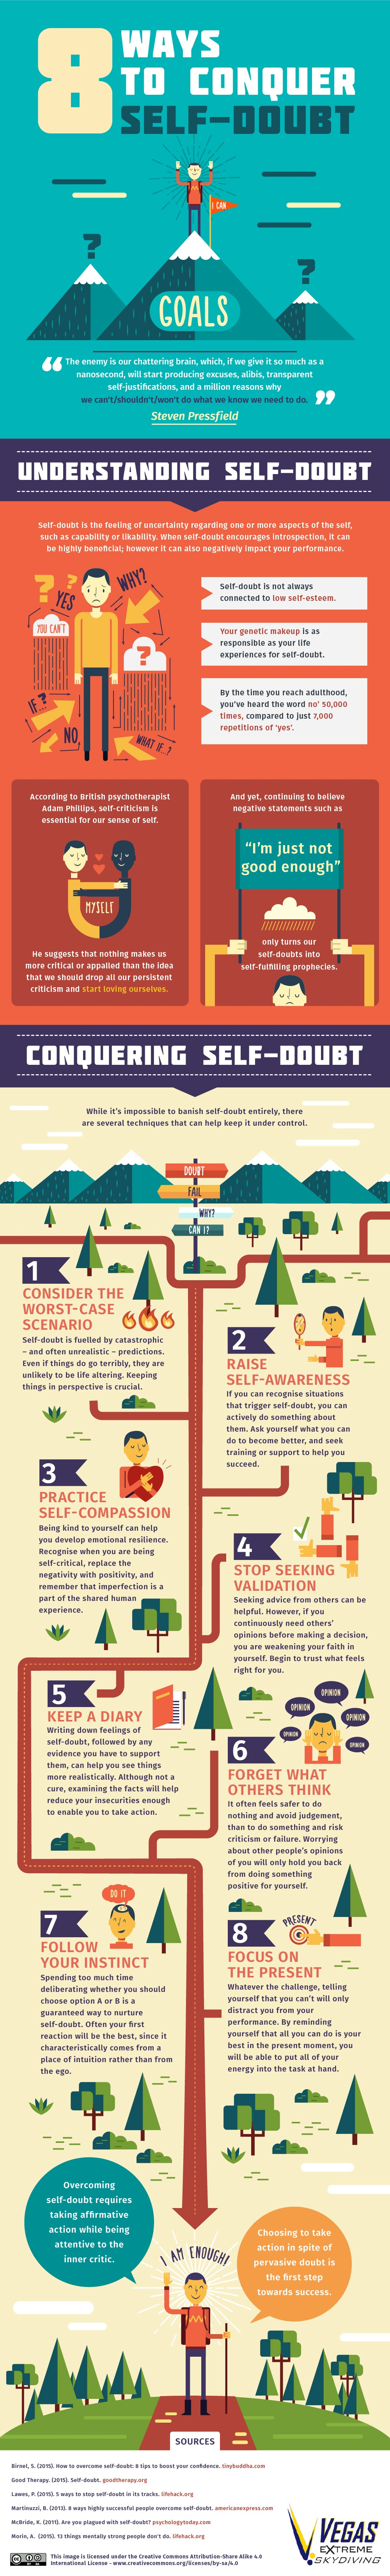 8 Ways To Conquer Self-Doubt - #infographic